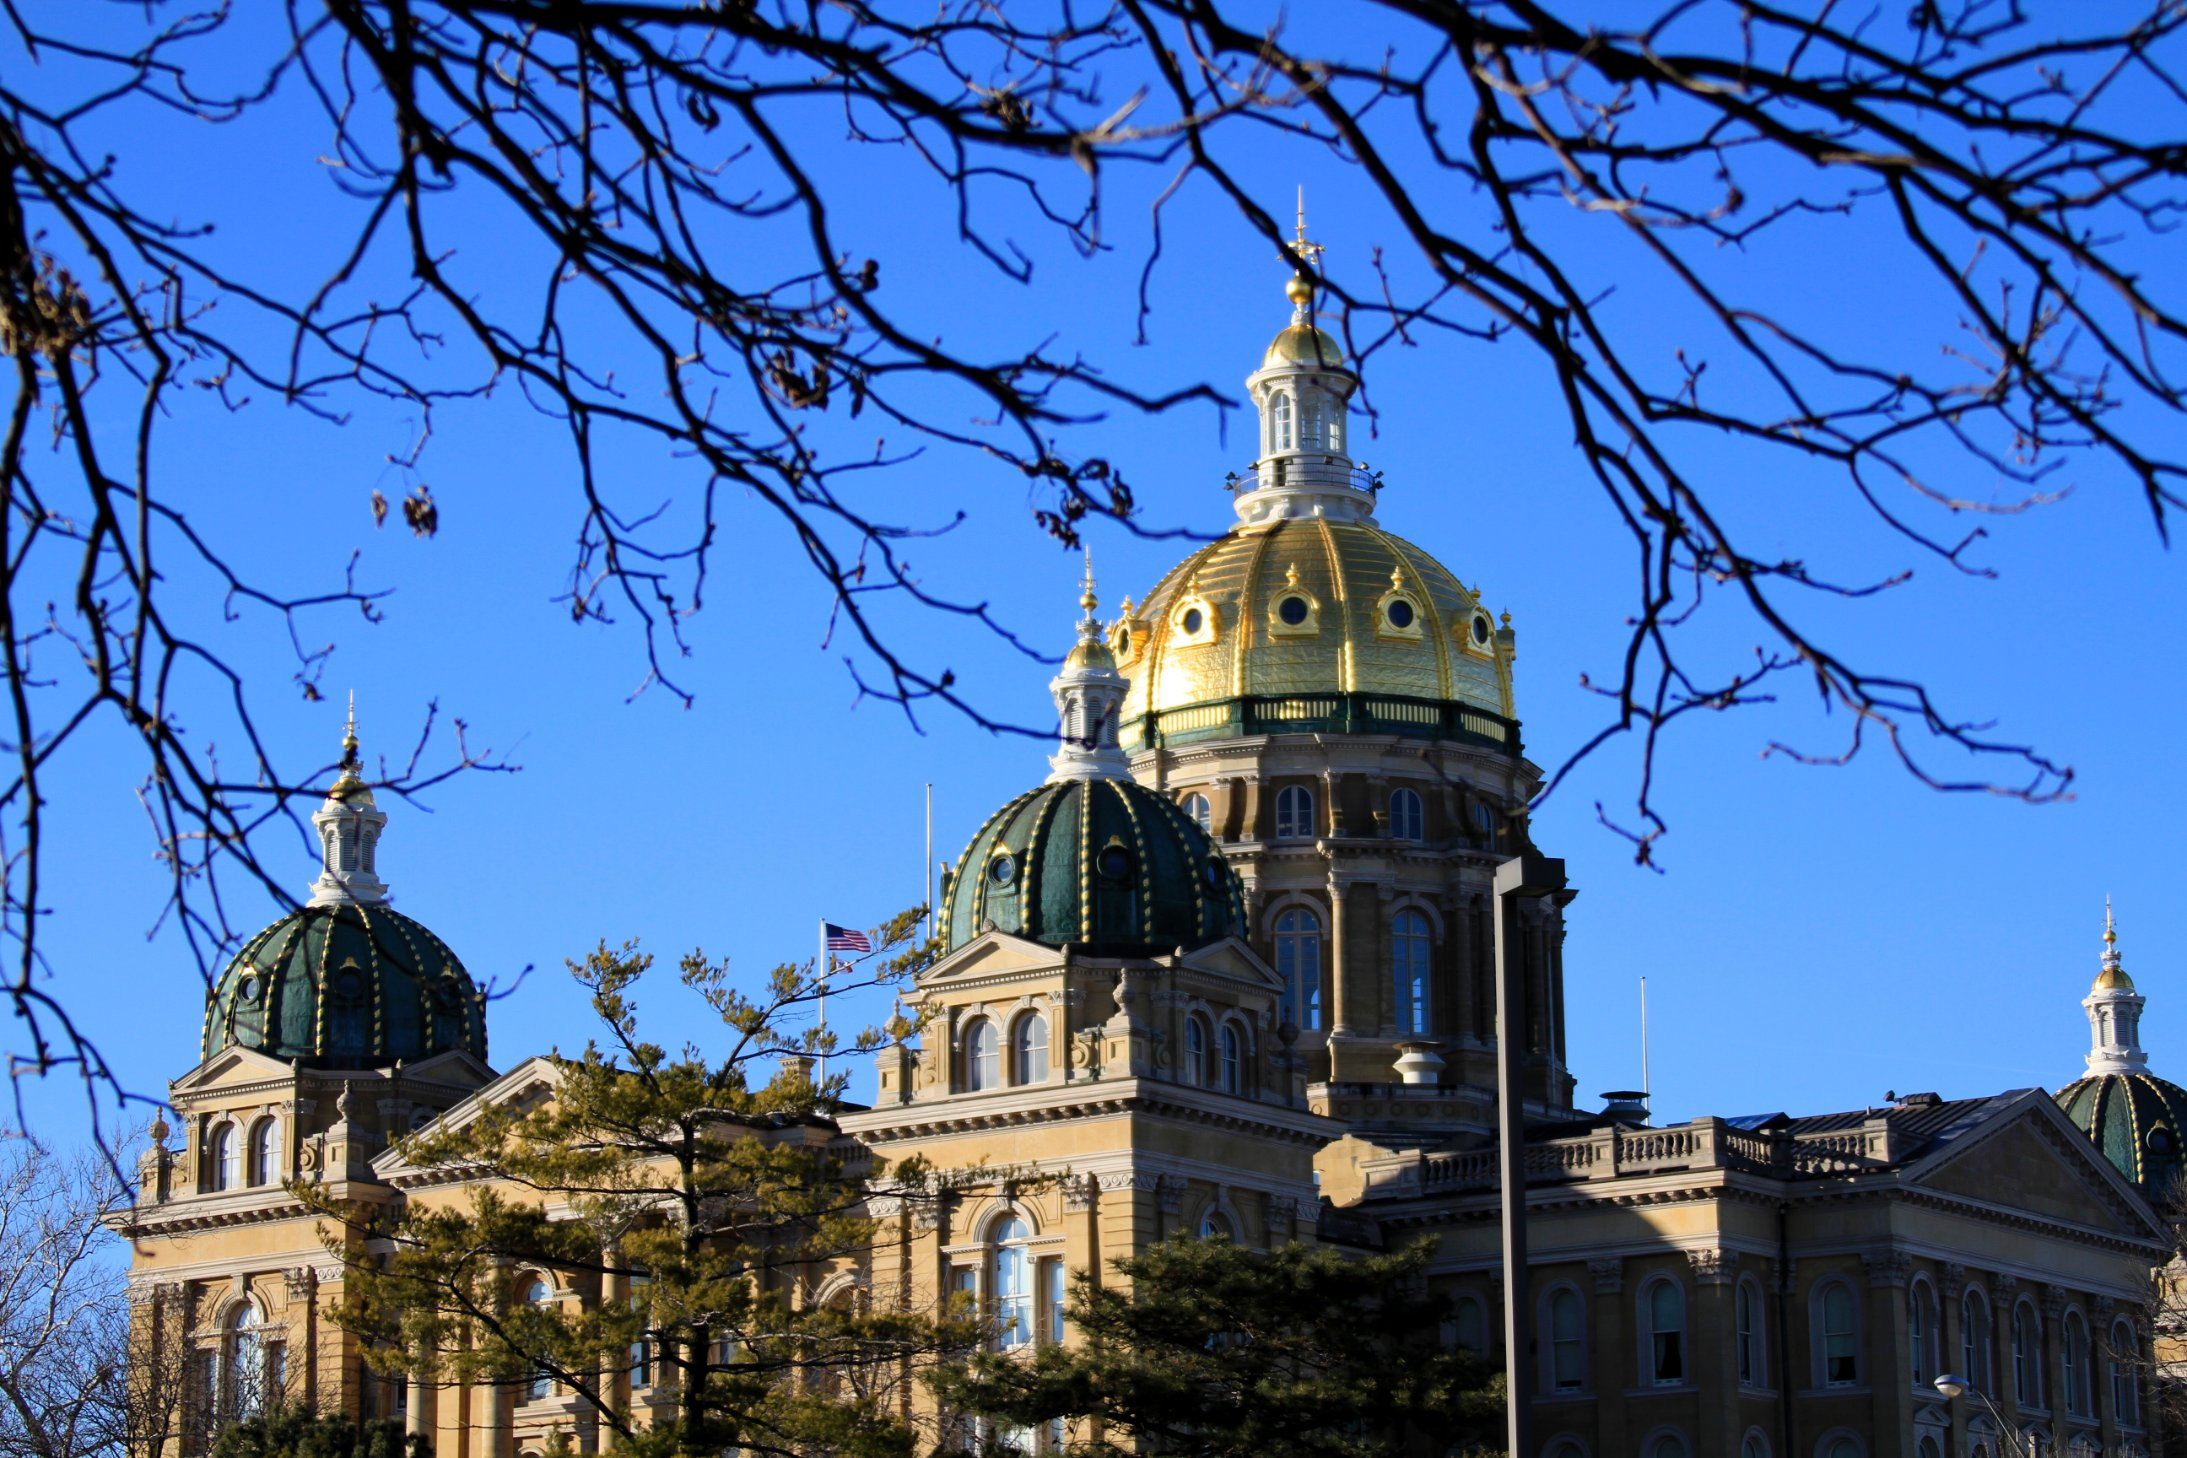 Iowa lawmakers introduced a right-to-die bill. Nine other states already have similar laws